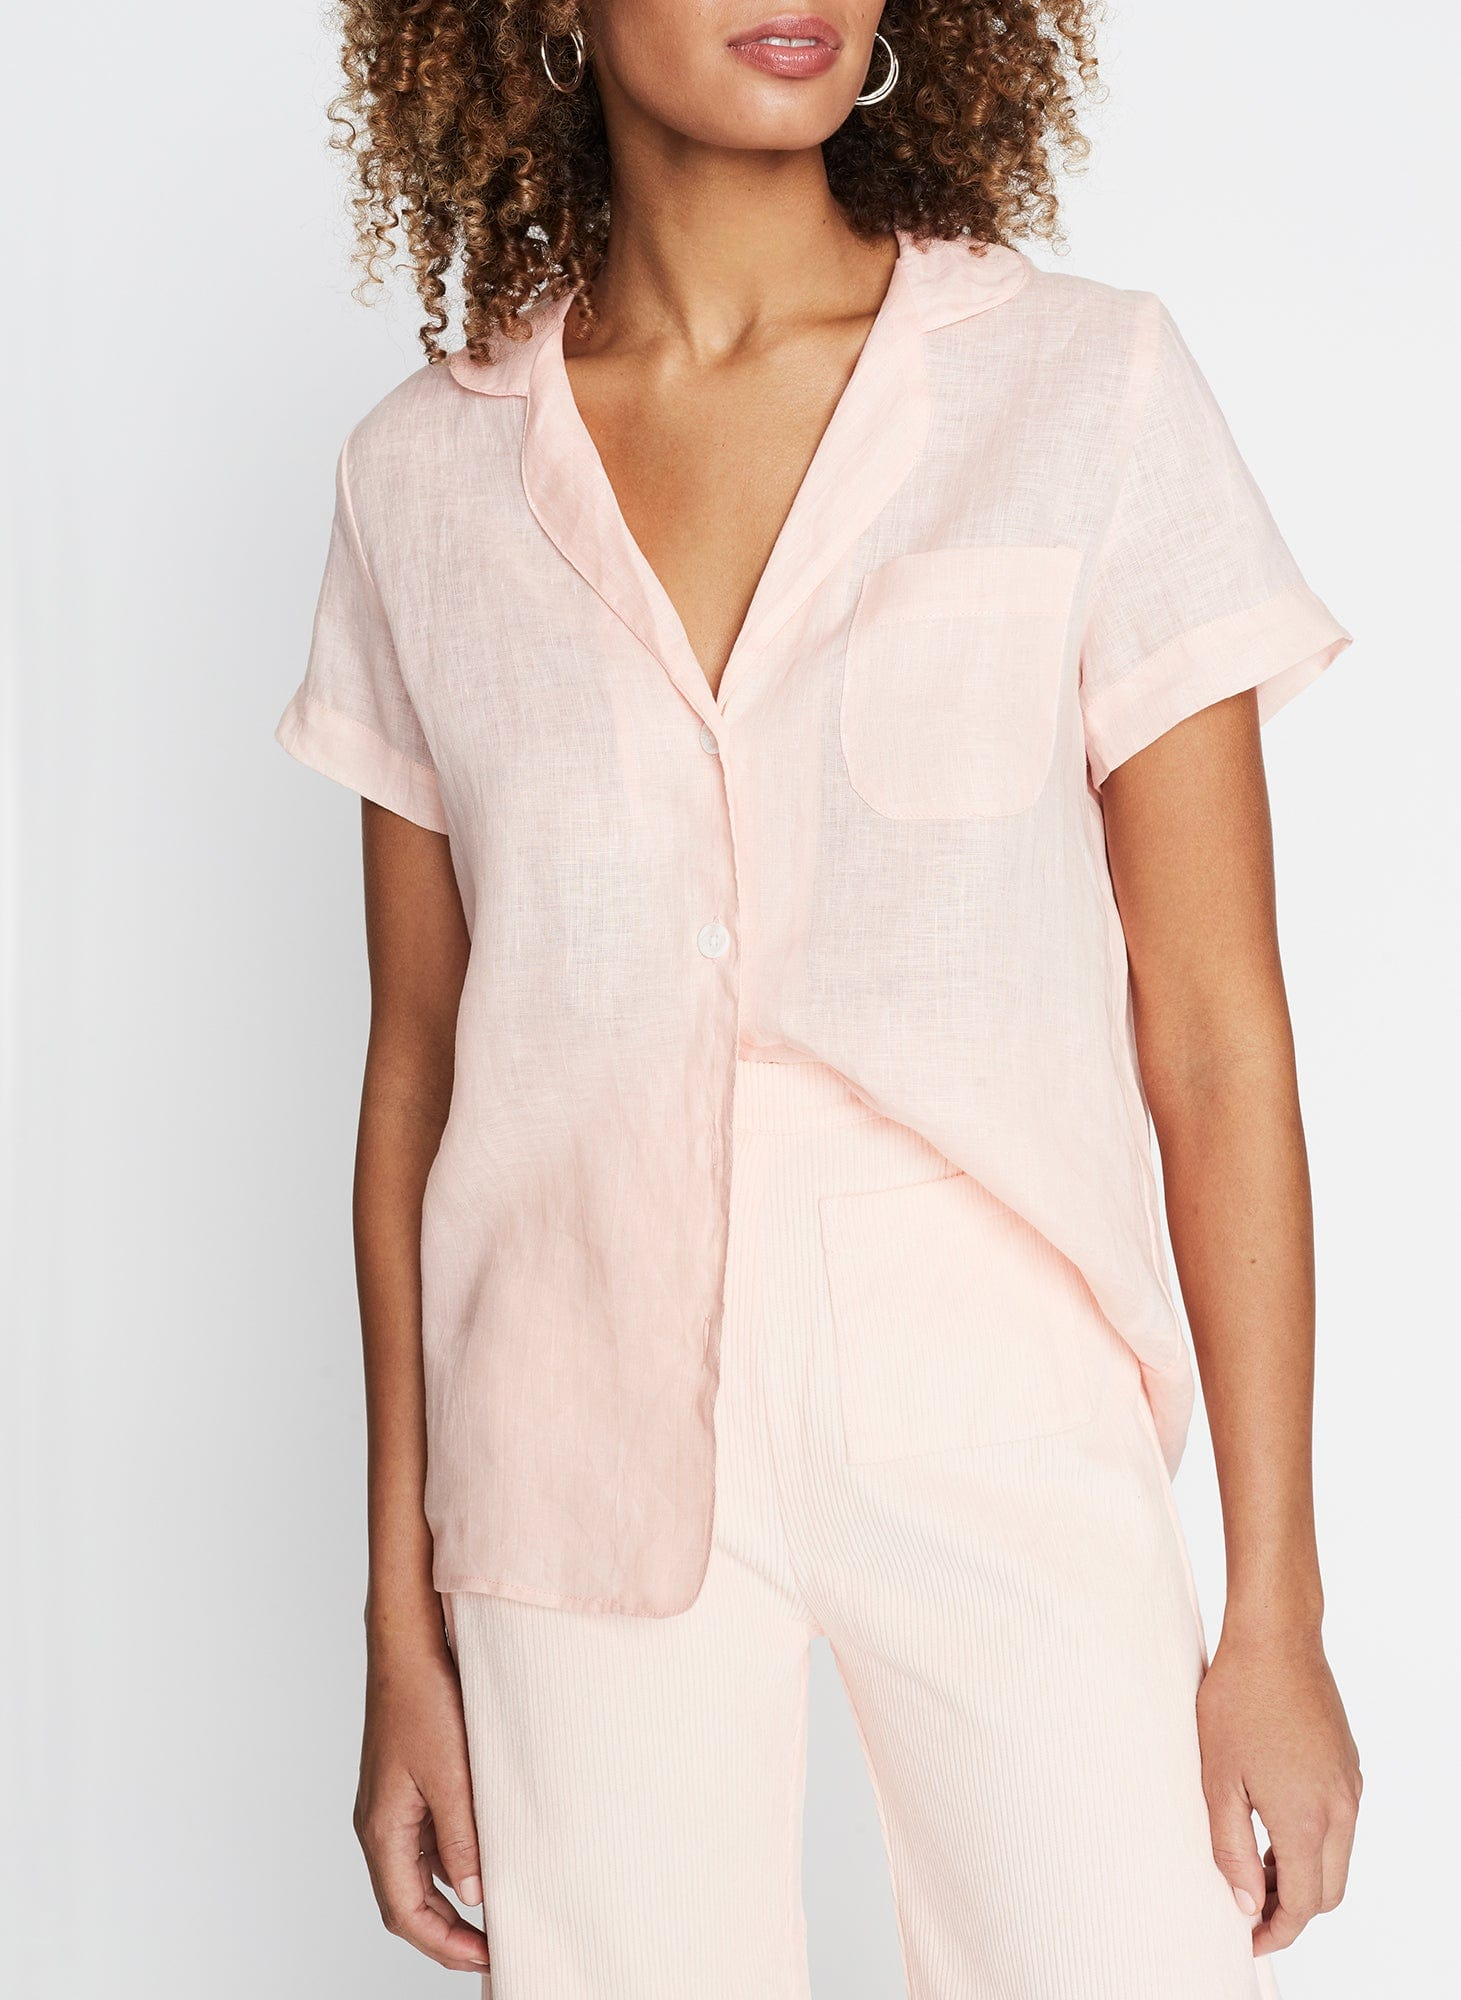 Maisy Shirt Plain Pale Pink